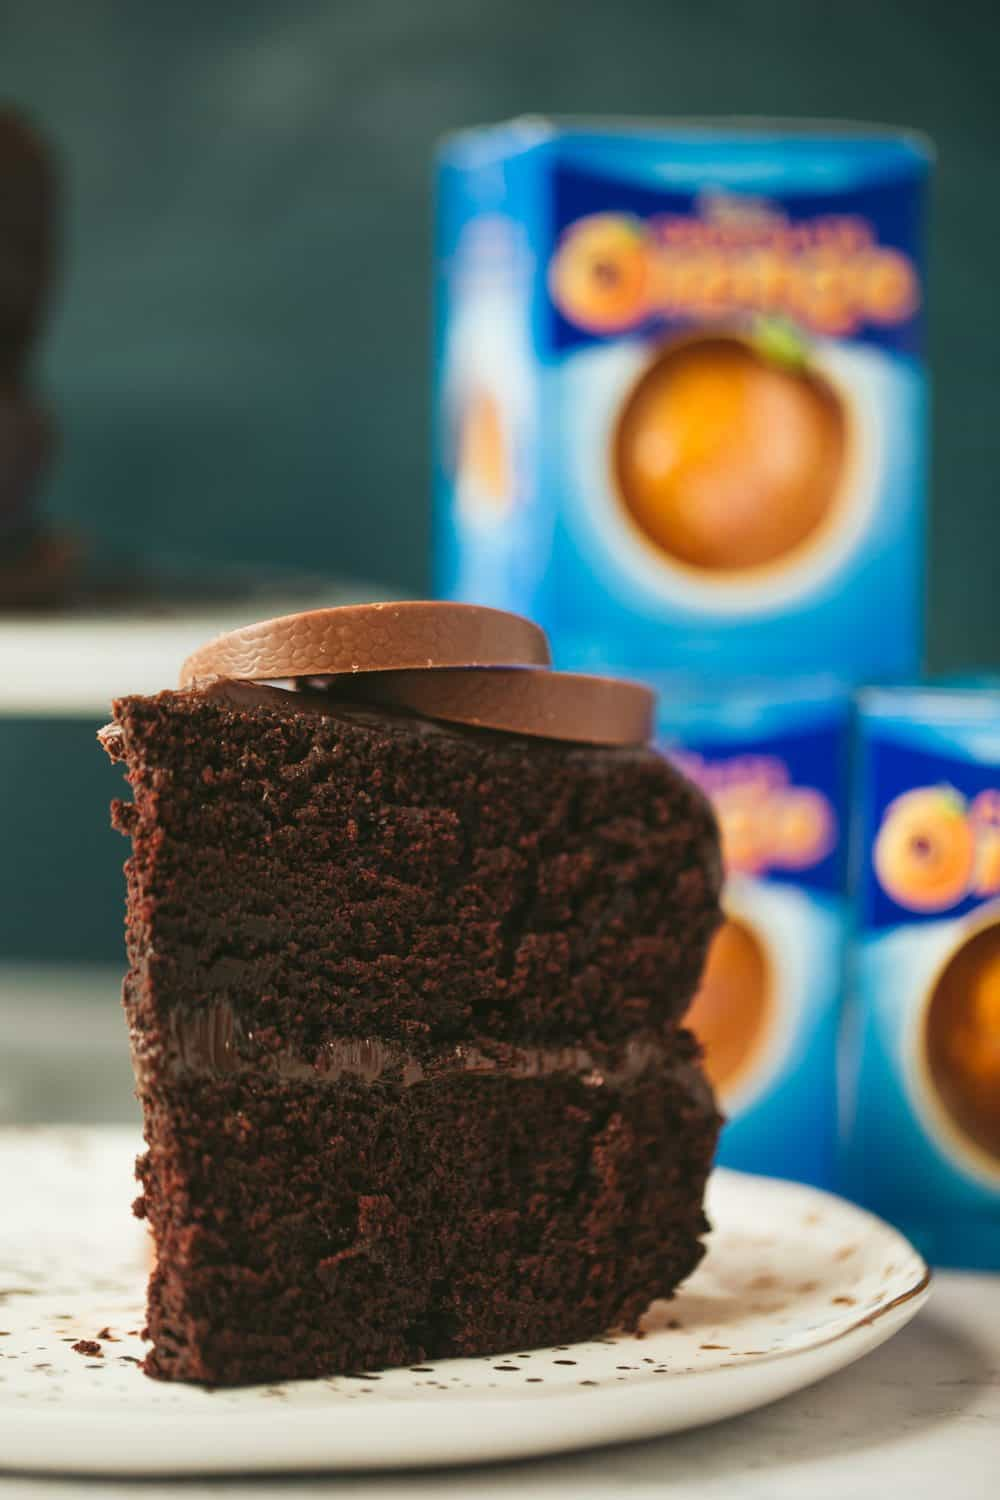 A slice of chocolate orange cake topped with Terry's chocolate orange segments. There are 3 boxes of chocolate oranges visible in the background.